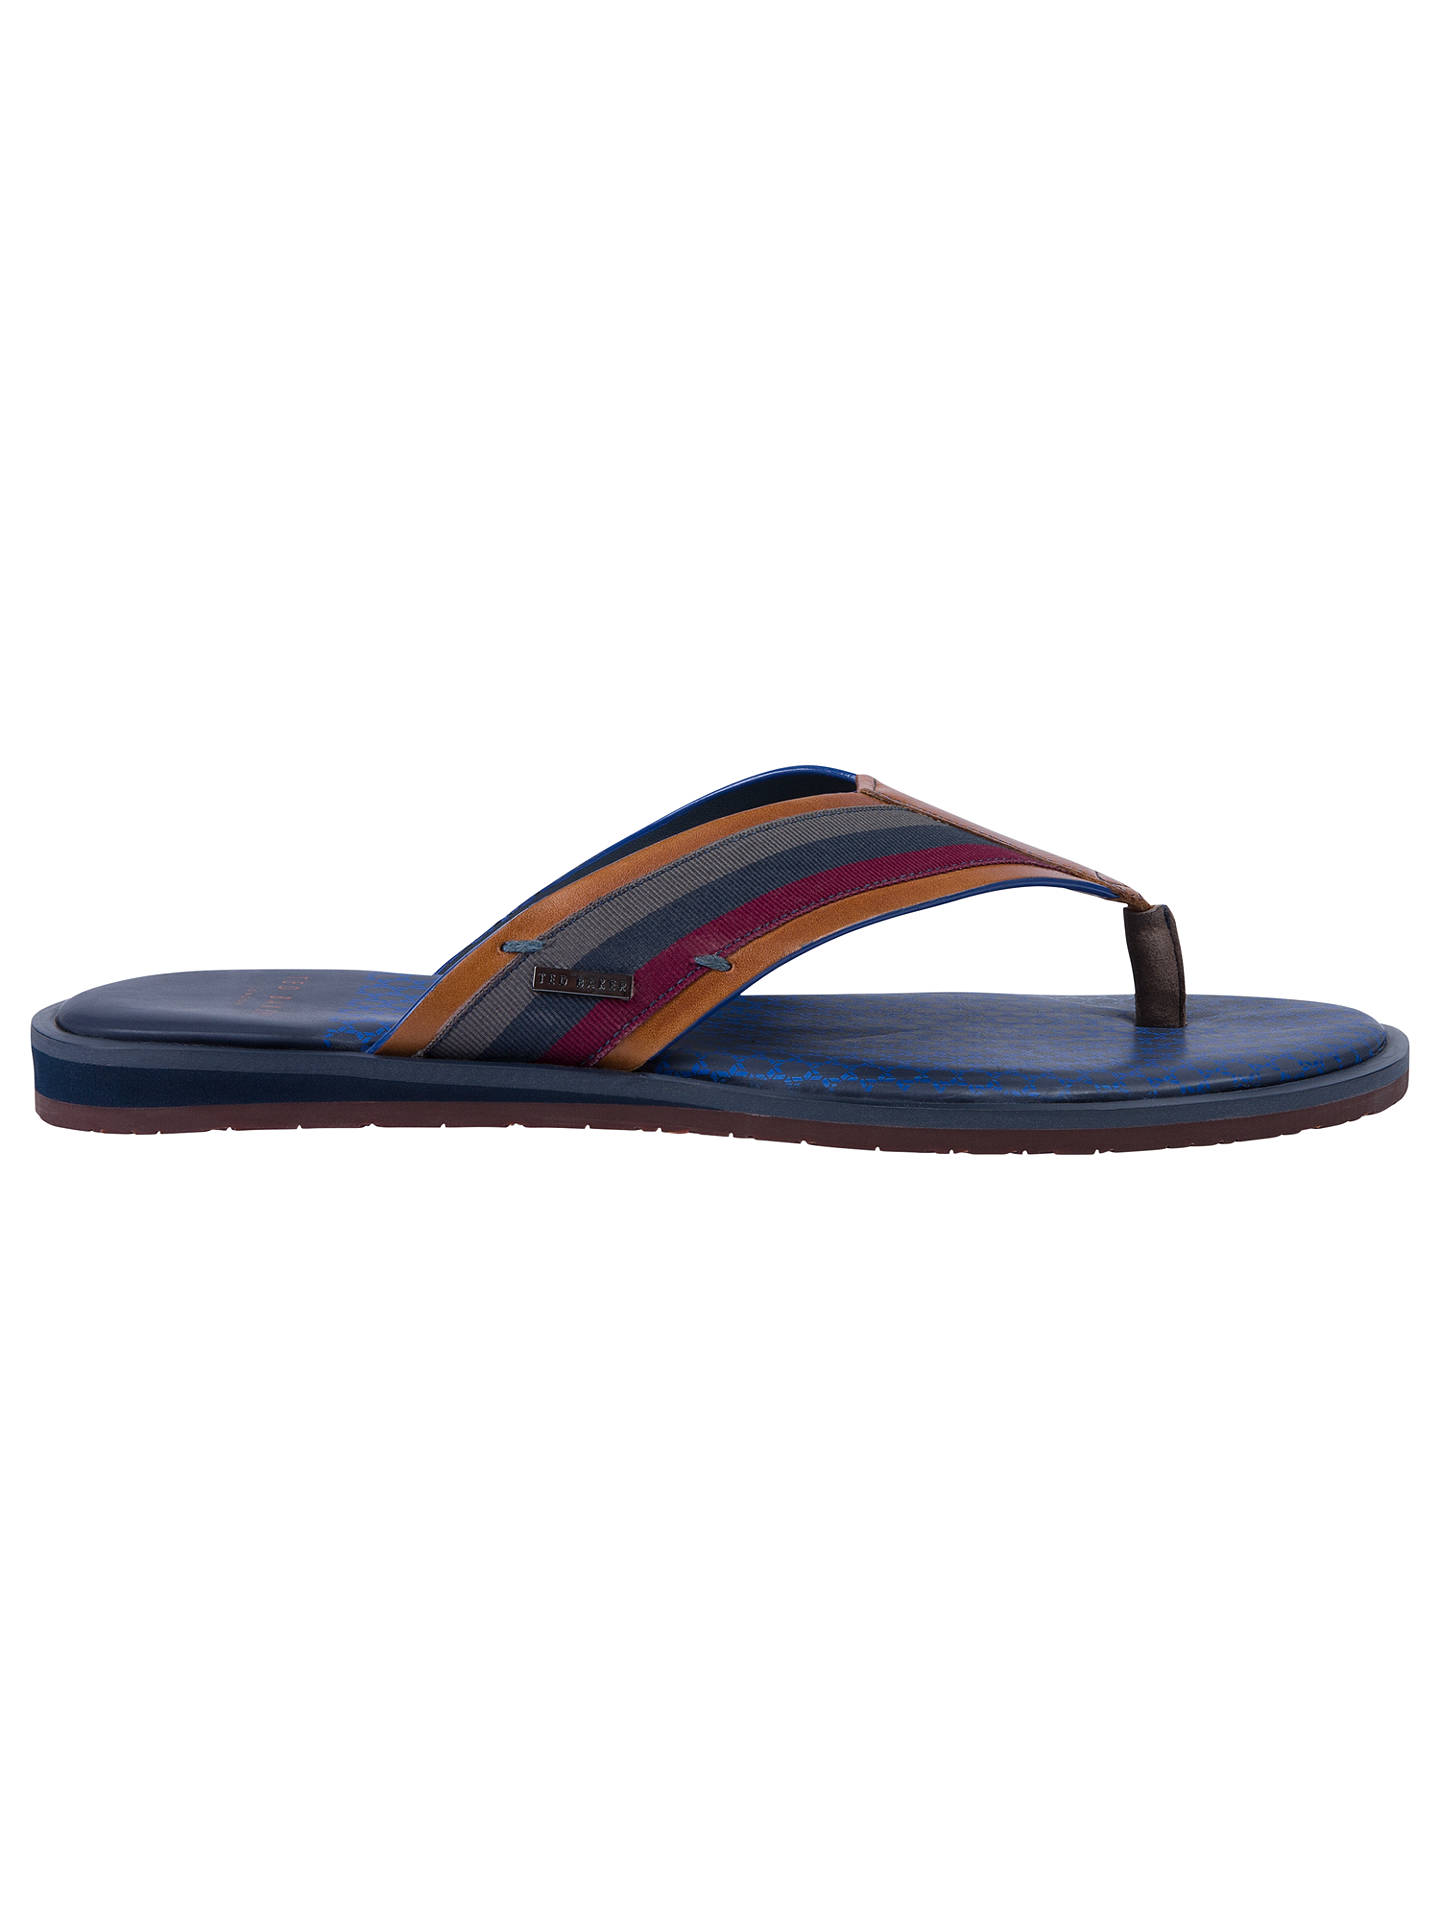 74a8f1a86e73 Ted Baker Knowlun Toe Post Sandals at John Lewis   Partners